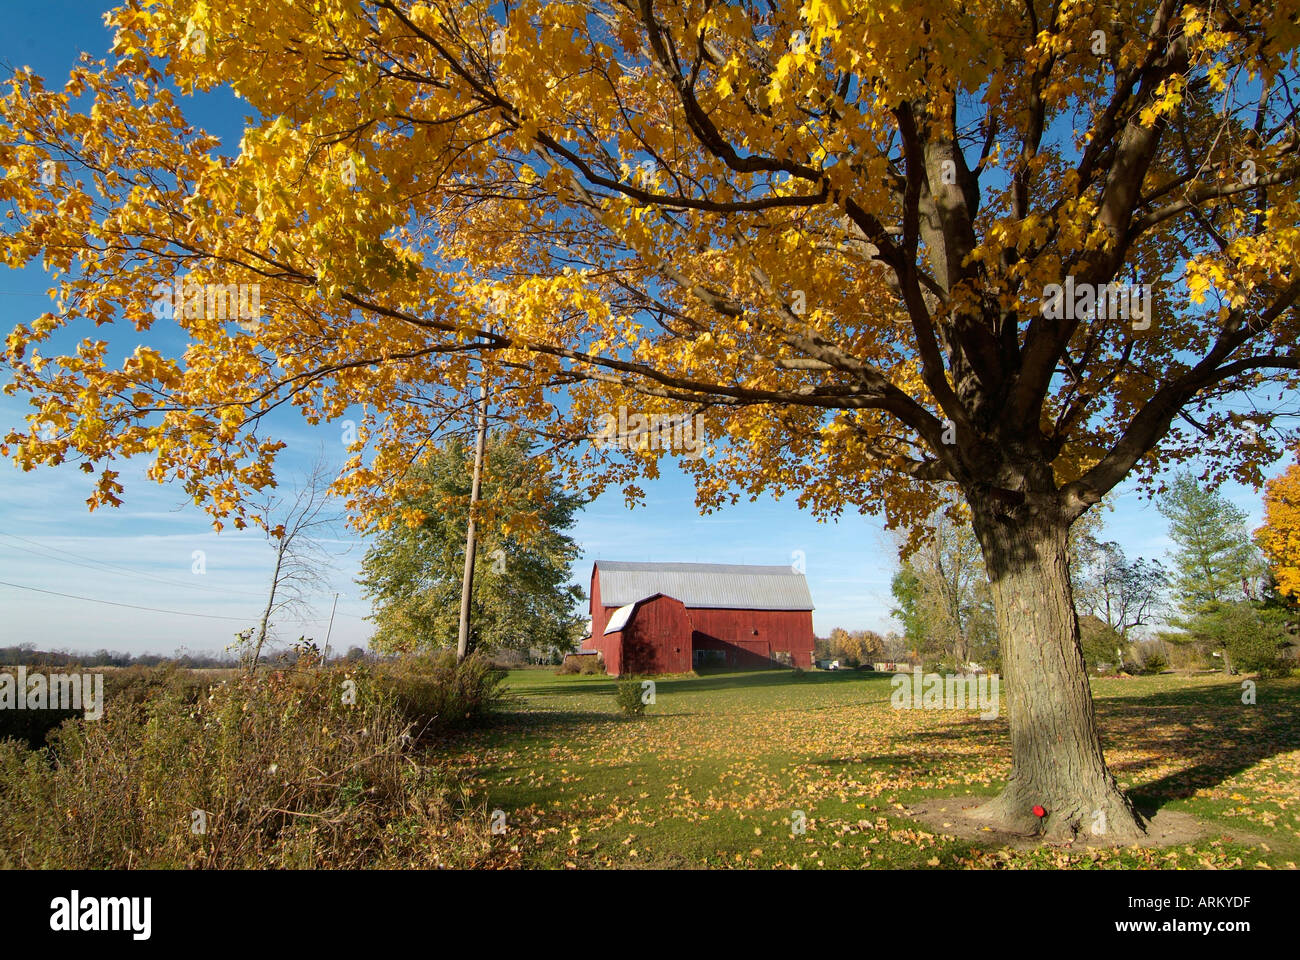 Autumn fall colors with a colorful maple tree with yellow leaves ...